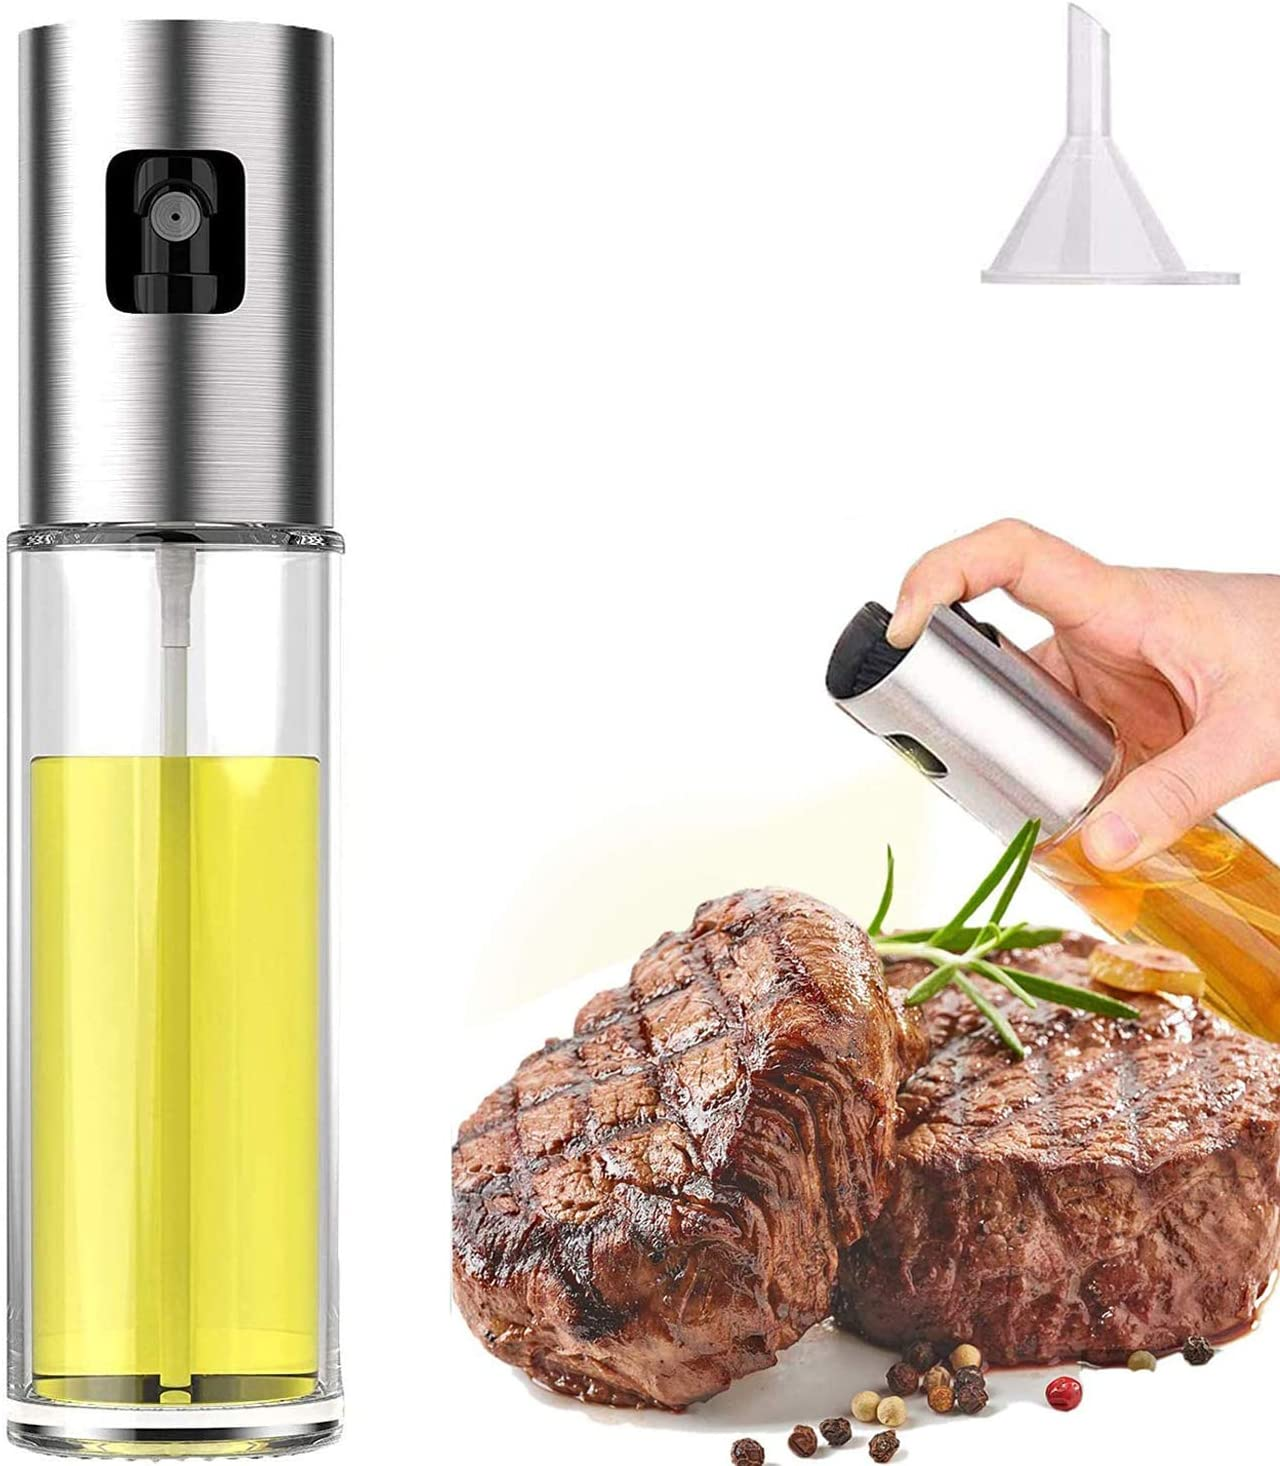 Olive Oil Sprayer for Cooking, Oil Spray Bottle Versatile Glass for Cooking, Baking, Roasting, Grilling